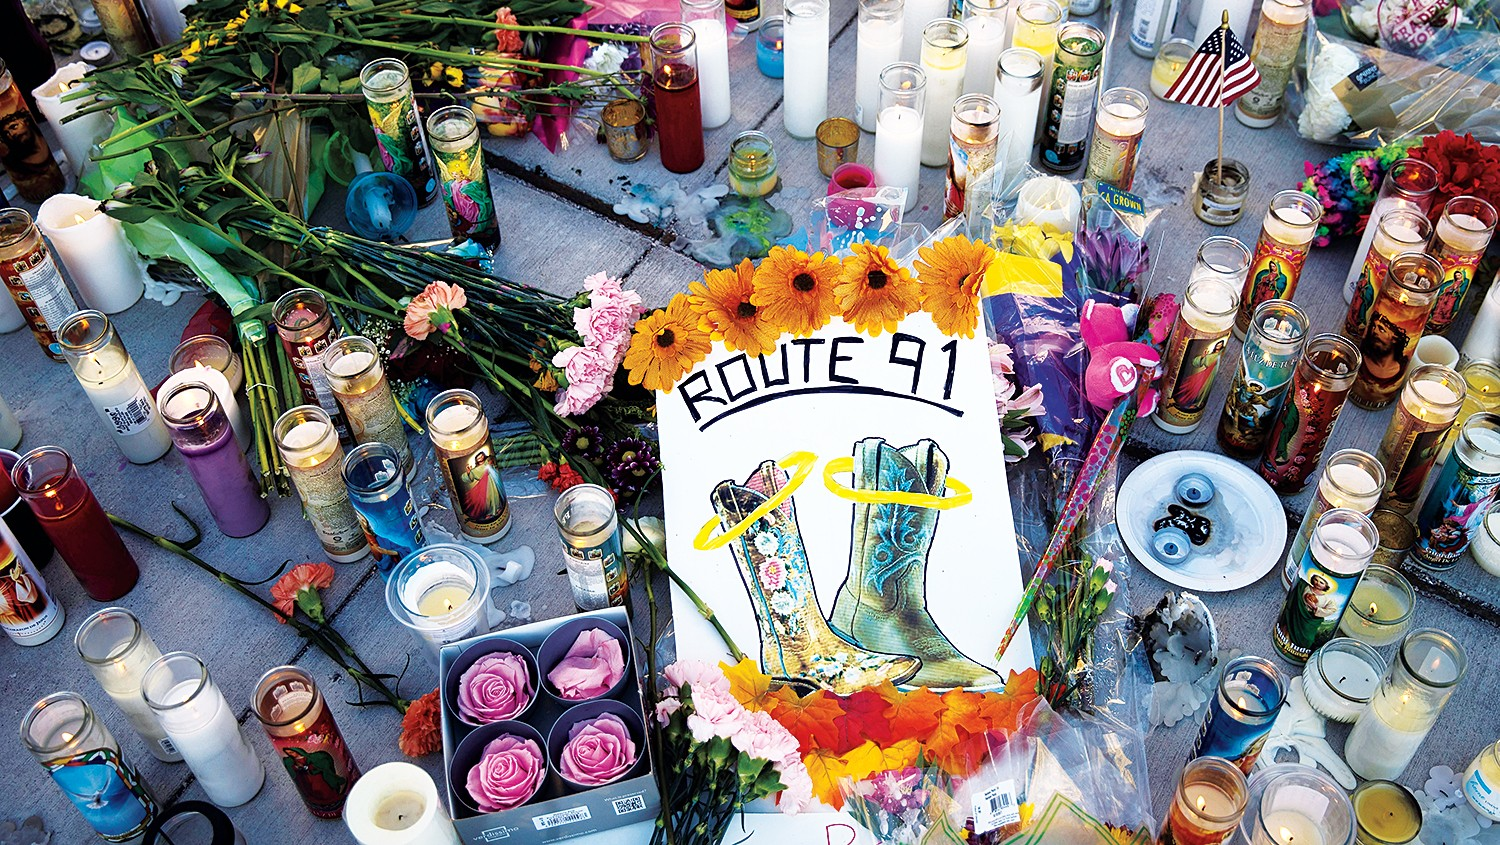 A makeshift memorial at an intersection on the Las Vegas Strip for the shooting victims at the Route91 festival.